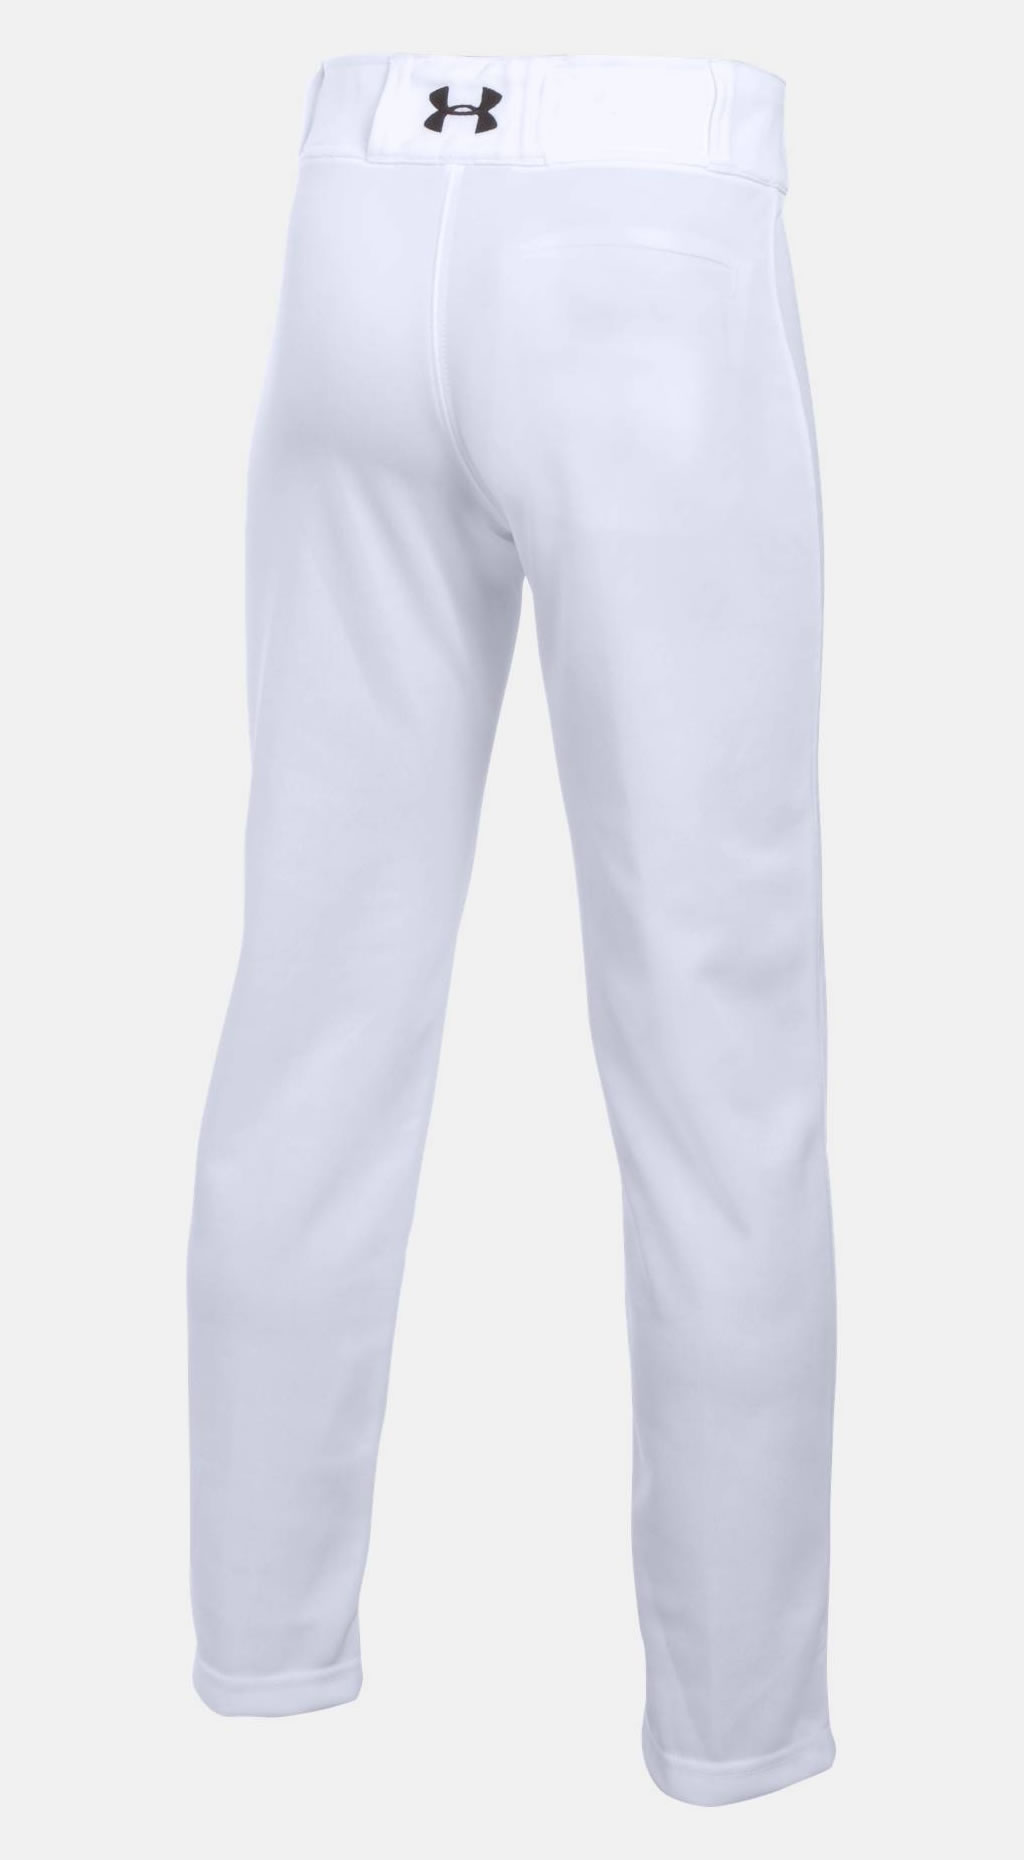 White baseball pants for boys by Under Armour, Back